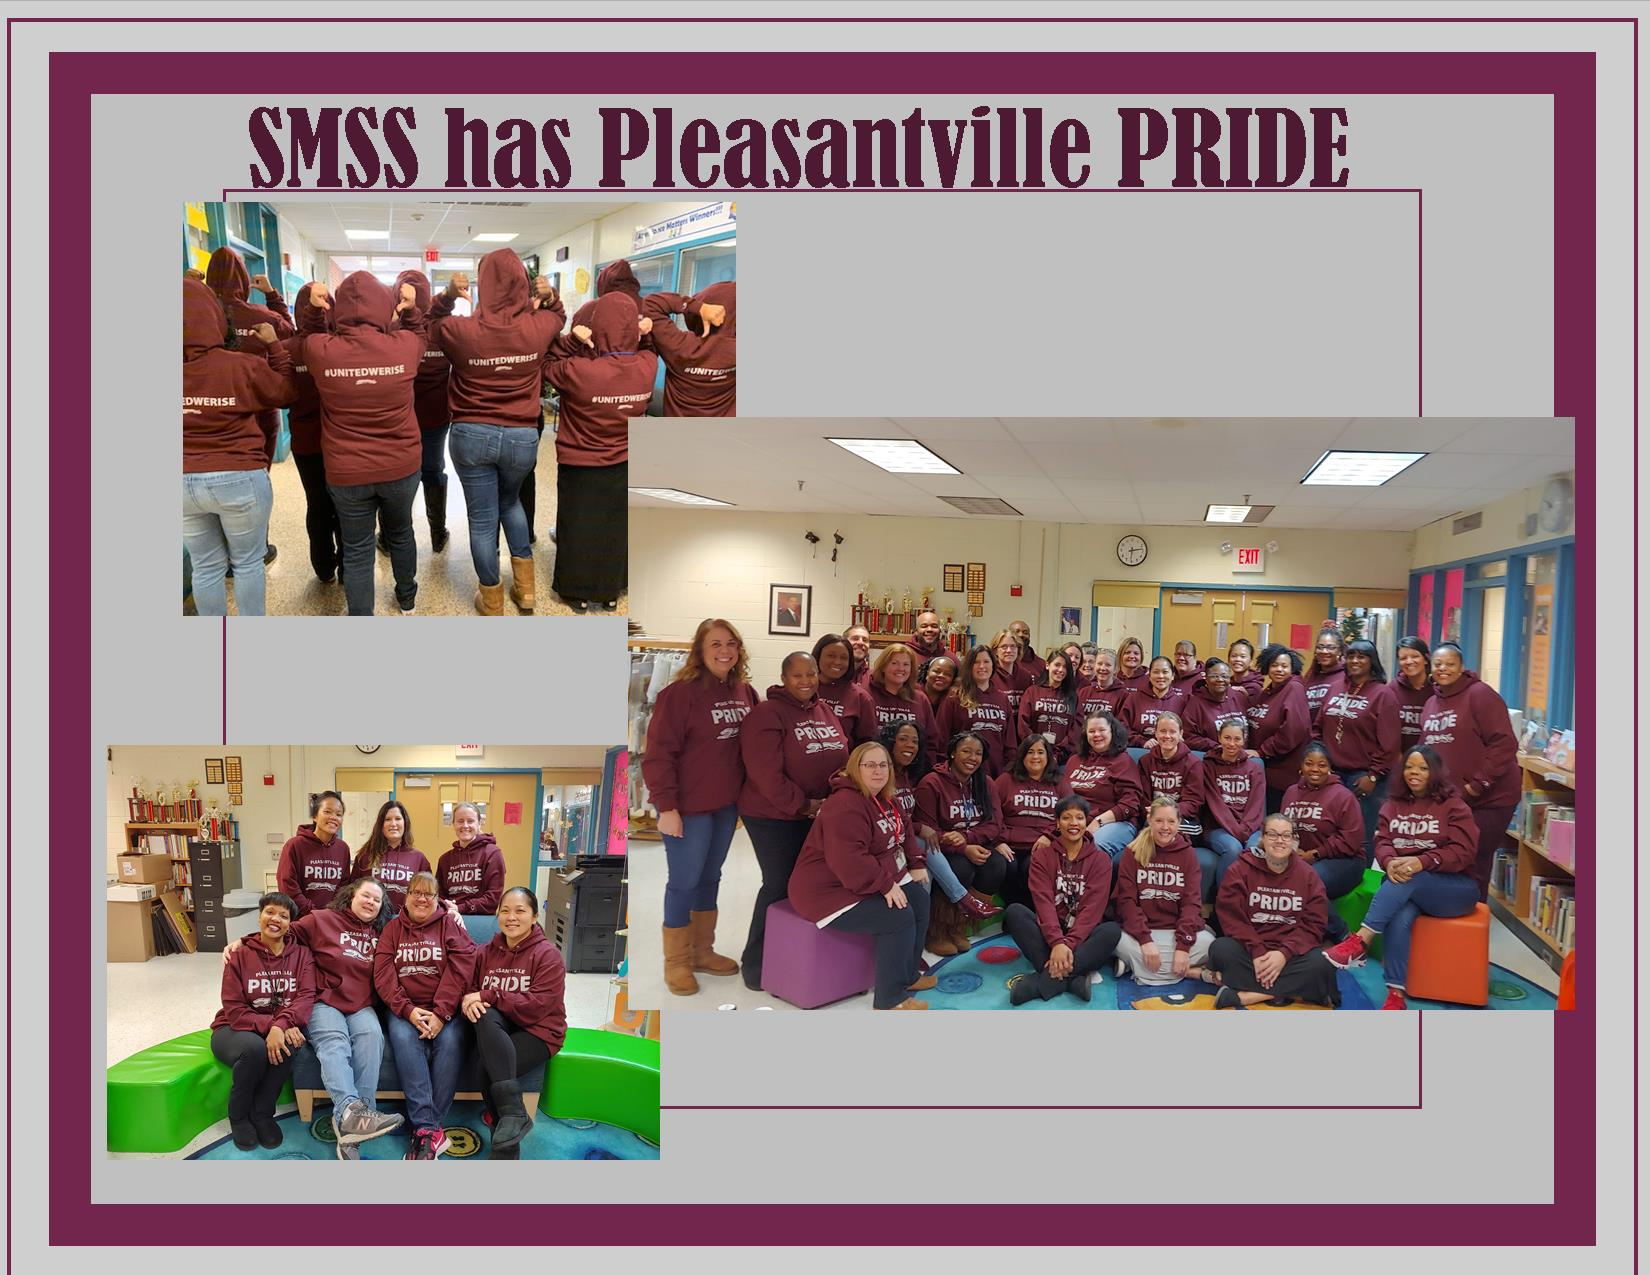 SMSS has pride images